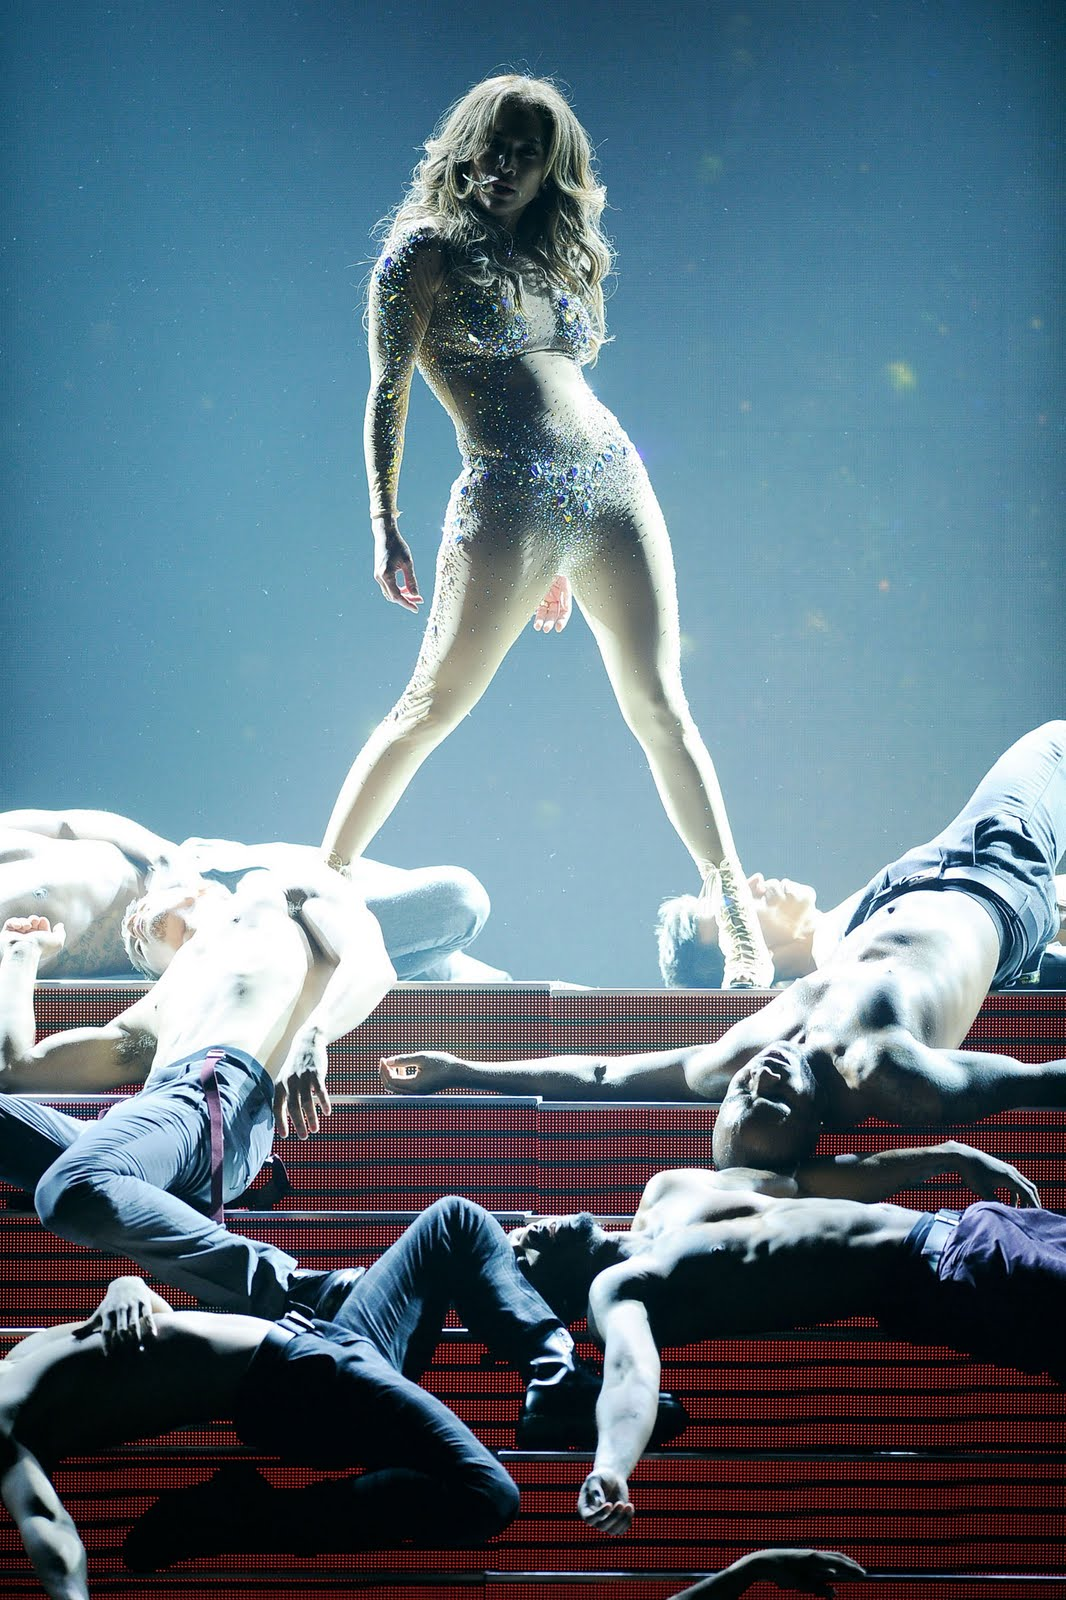 http://1.bp.blogspot.com/-vyiLlJ2Q46g/TsqZIY2DyMI/AAAAAAAAMtU/H_Y7D0-x28s/s1600/Jennifer-Lopez-Performs-at-the-American-Music-Awards-in-Los-Angeles-7.jpg